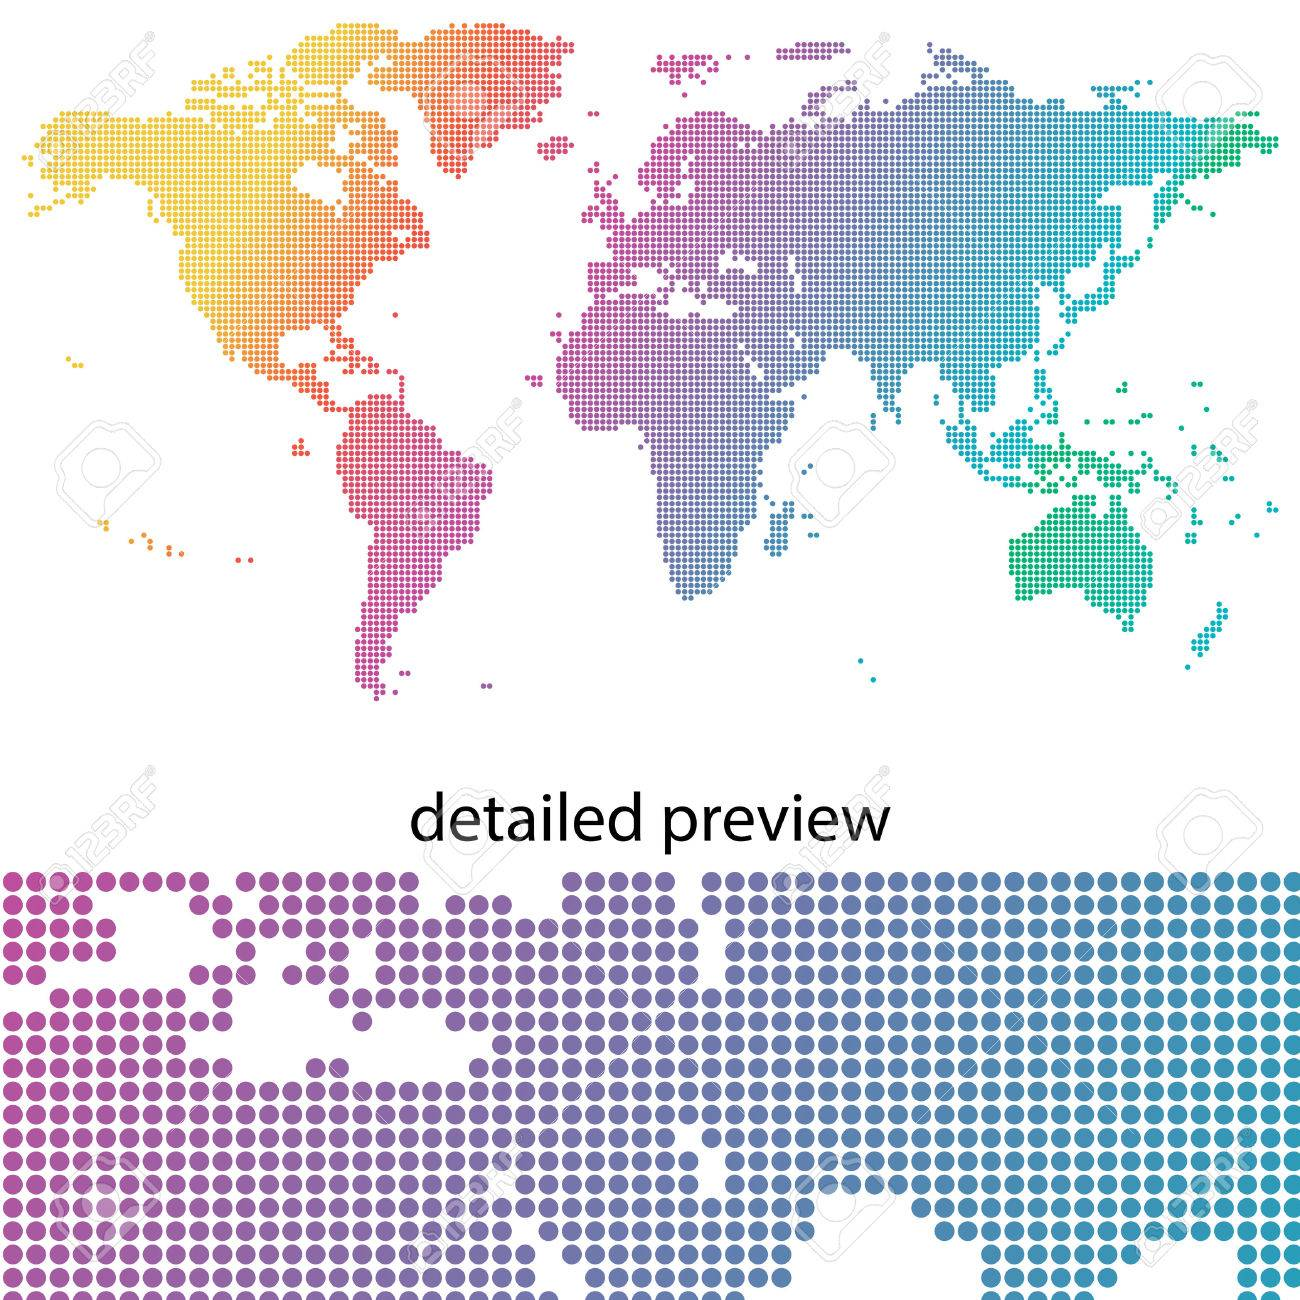 Colorful & dotted world map - 59435247